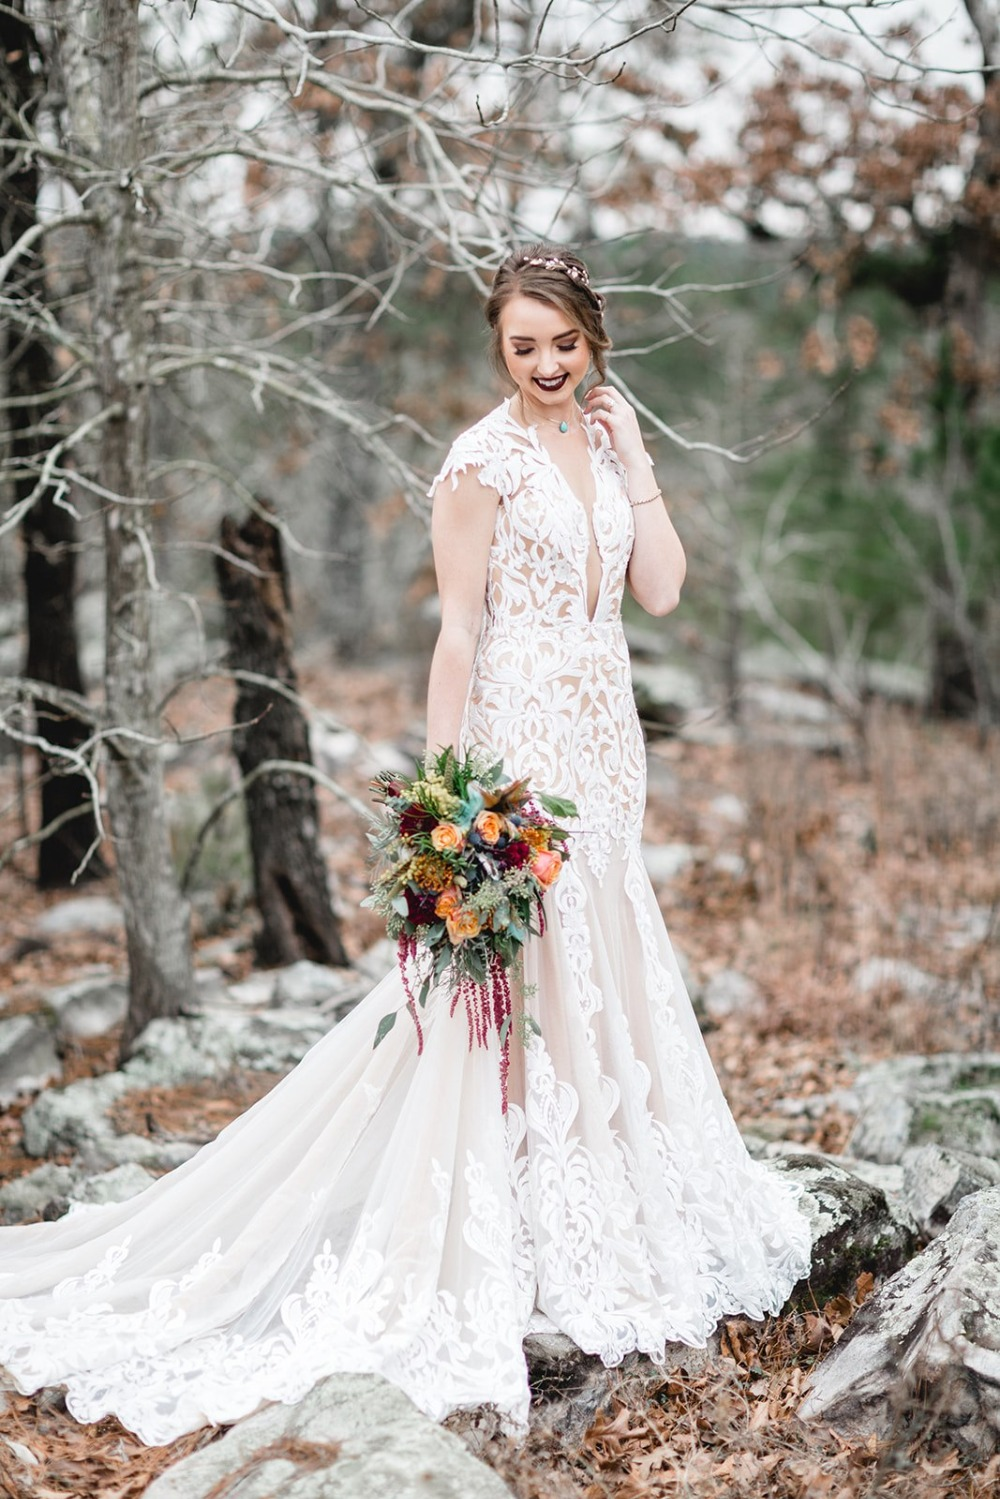 This Country Wedding For 24K Will Blow Your Mind